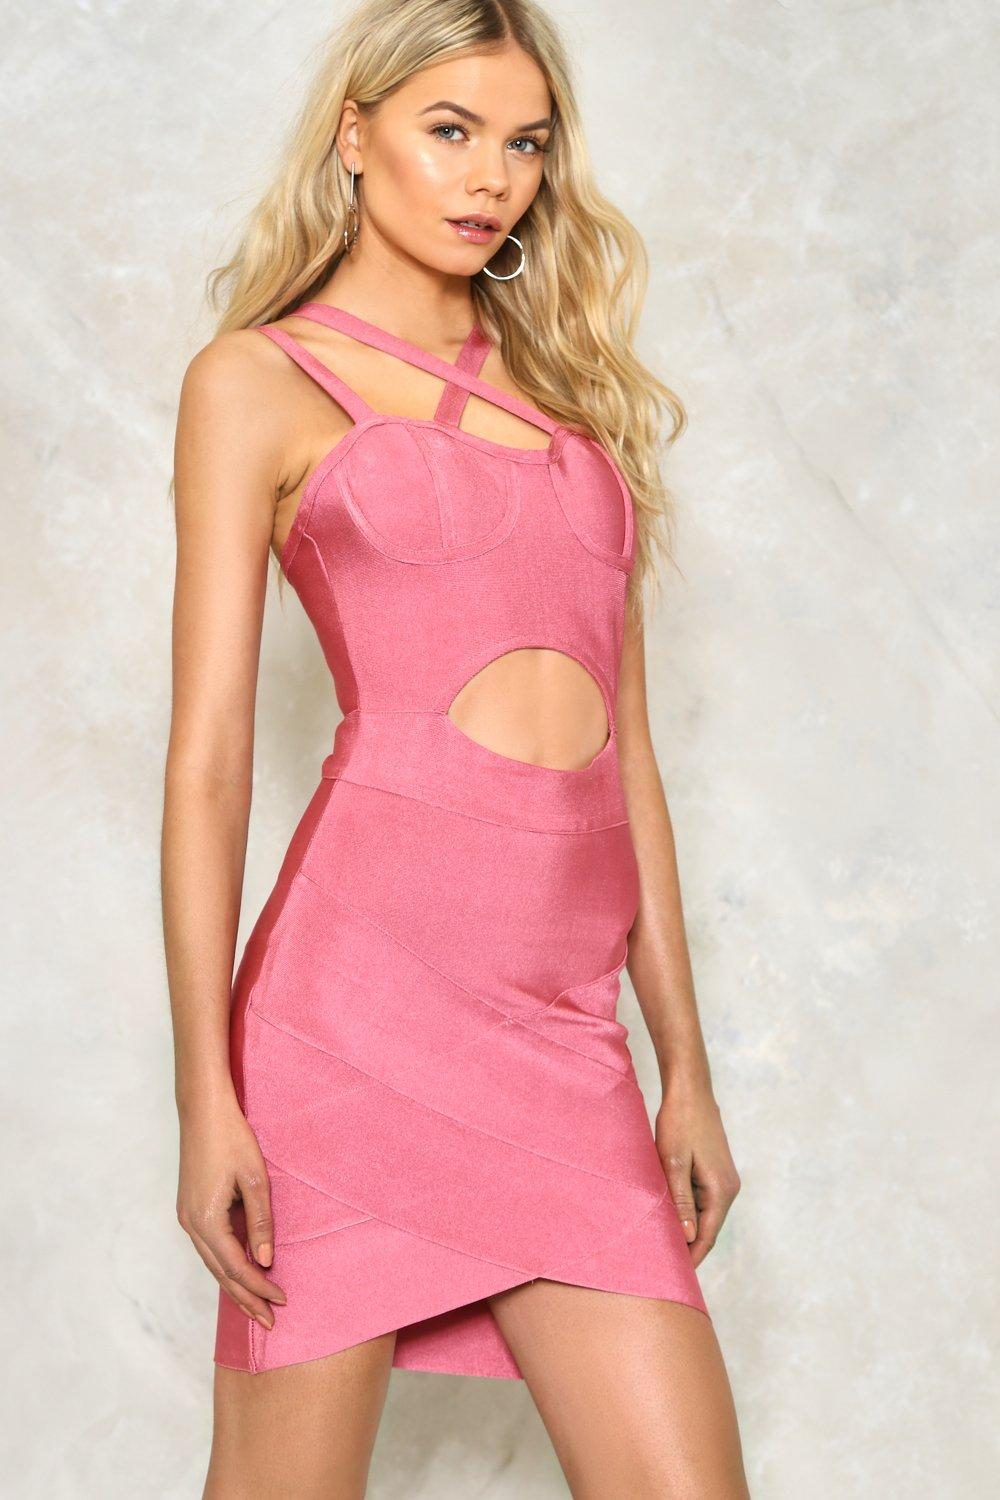 b388bda821b Womens Pink Cut-Out Above the Rest Bandage Dress